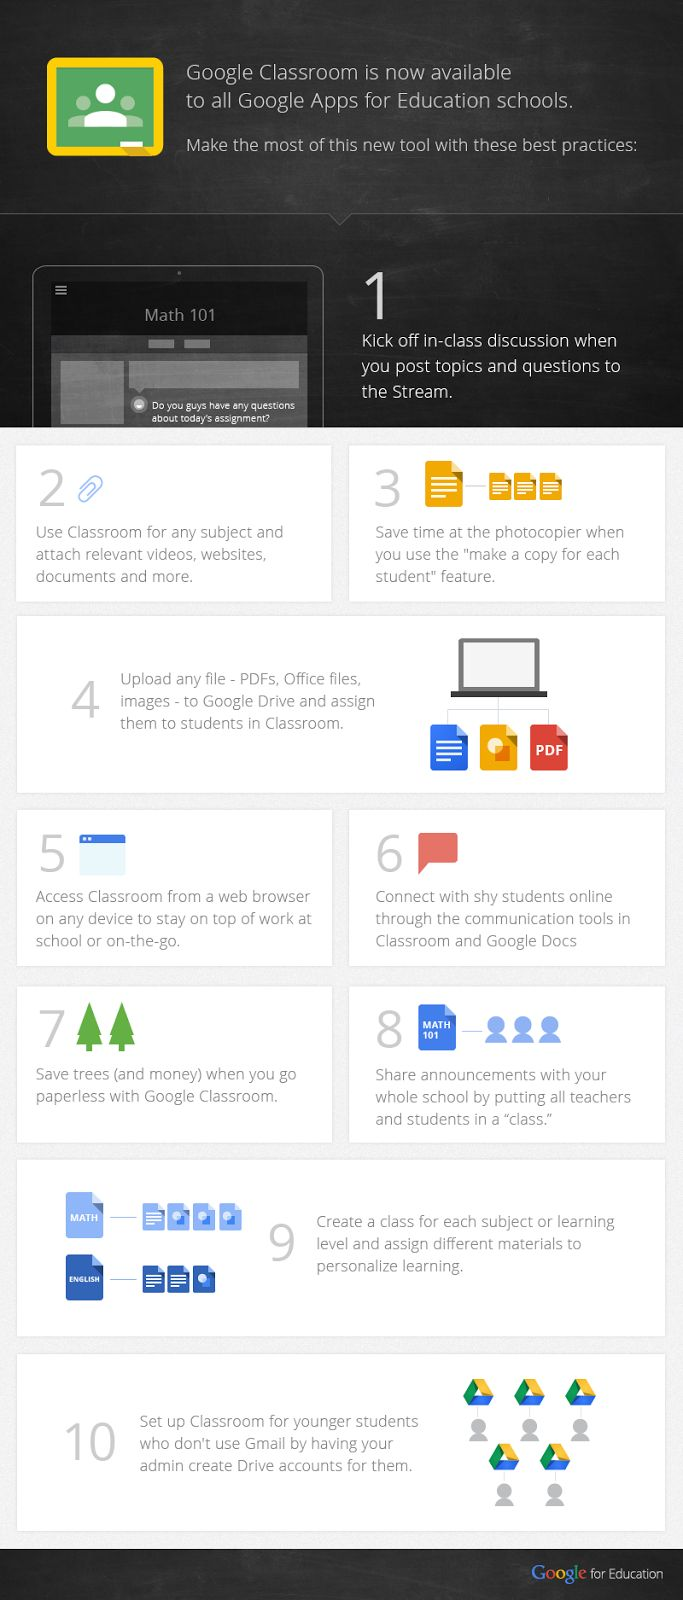 A few days ago Google added some interesting new features to Google Classroom such as group integration, exporting grades, sorting and greater teacher controls. However, today I want to share with you this infographic created by Google featuring the 10 best practices in a Google Classroom.